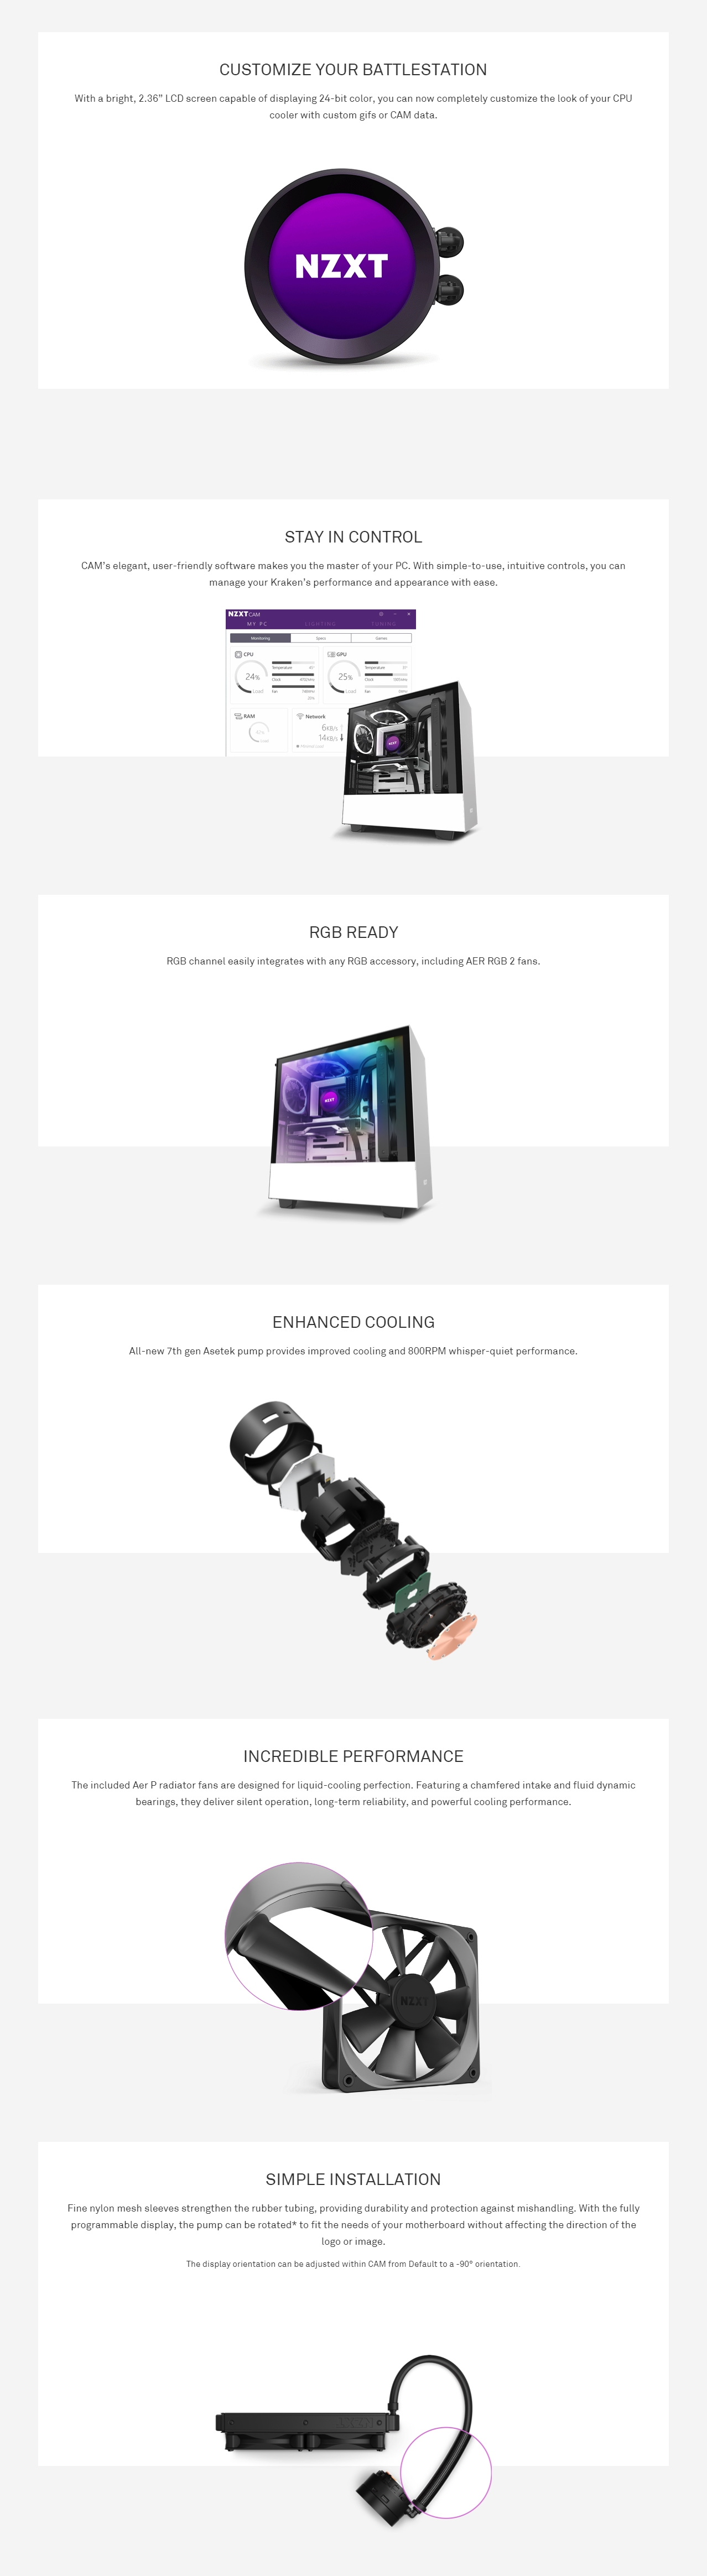 A large marketing image providing additional information about the product NZXT Kraken Z53 240mm AIO Liquid CPU Cooler - Additional alt info not provided